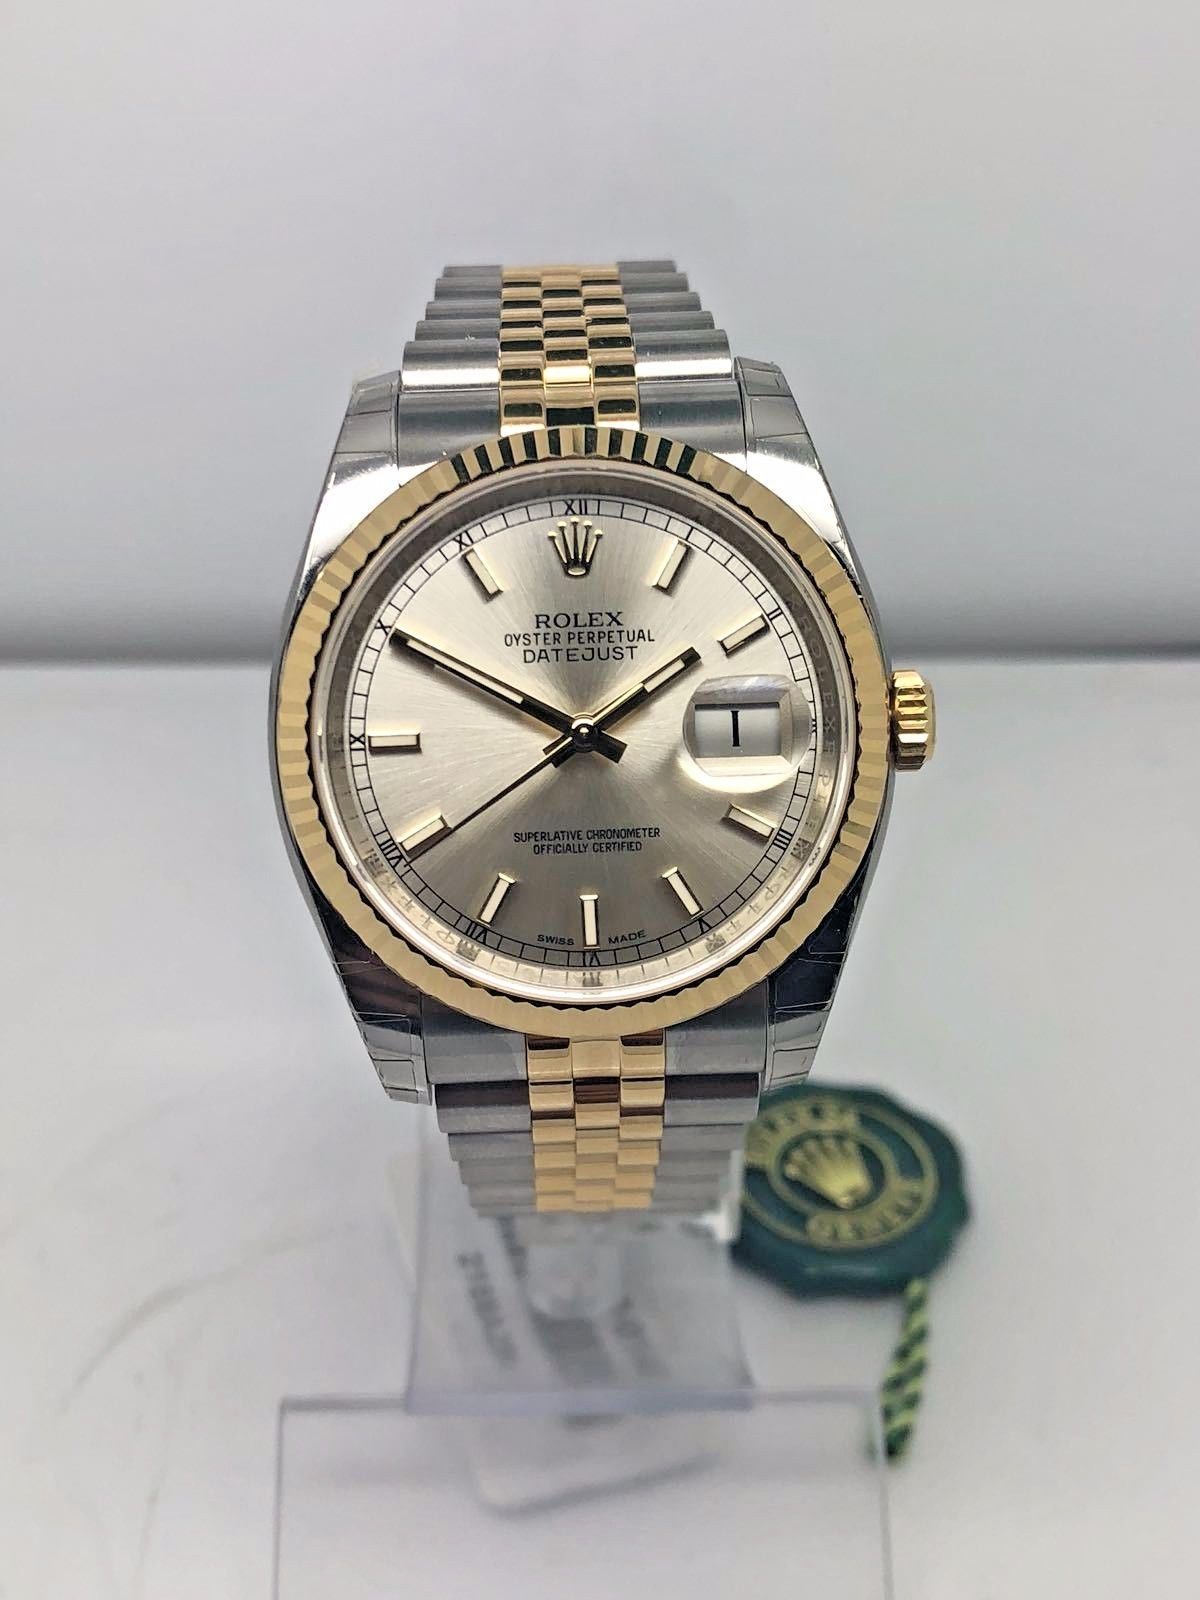 Rolex datejust 36 steel gold 116233 m r gold jewellers for Rolex date just 36